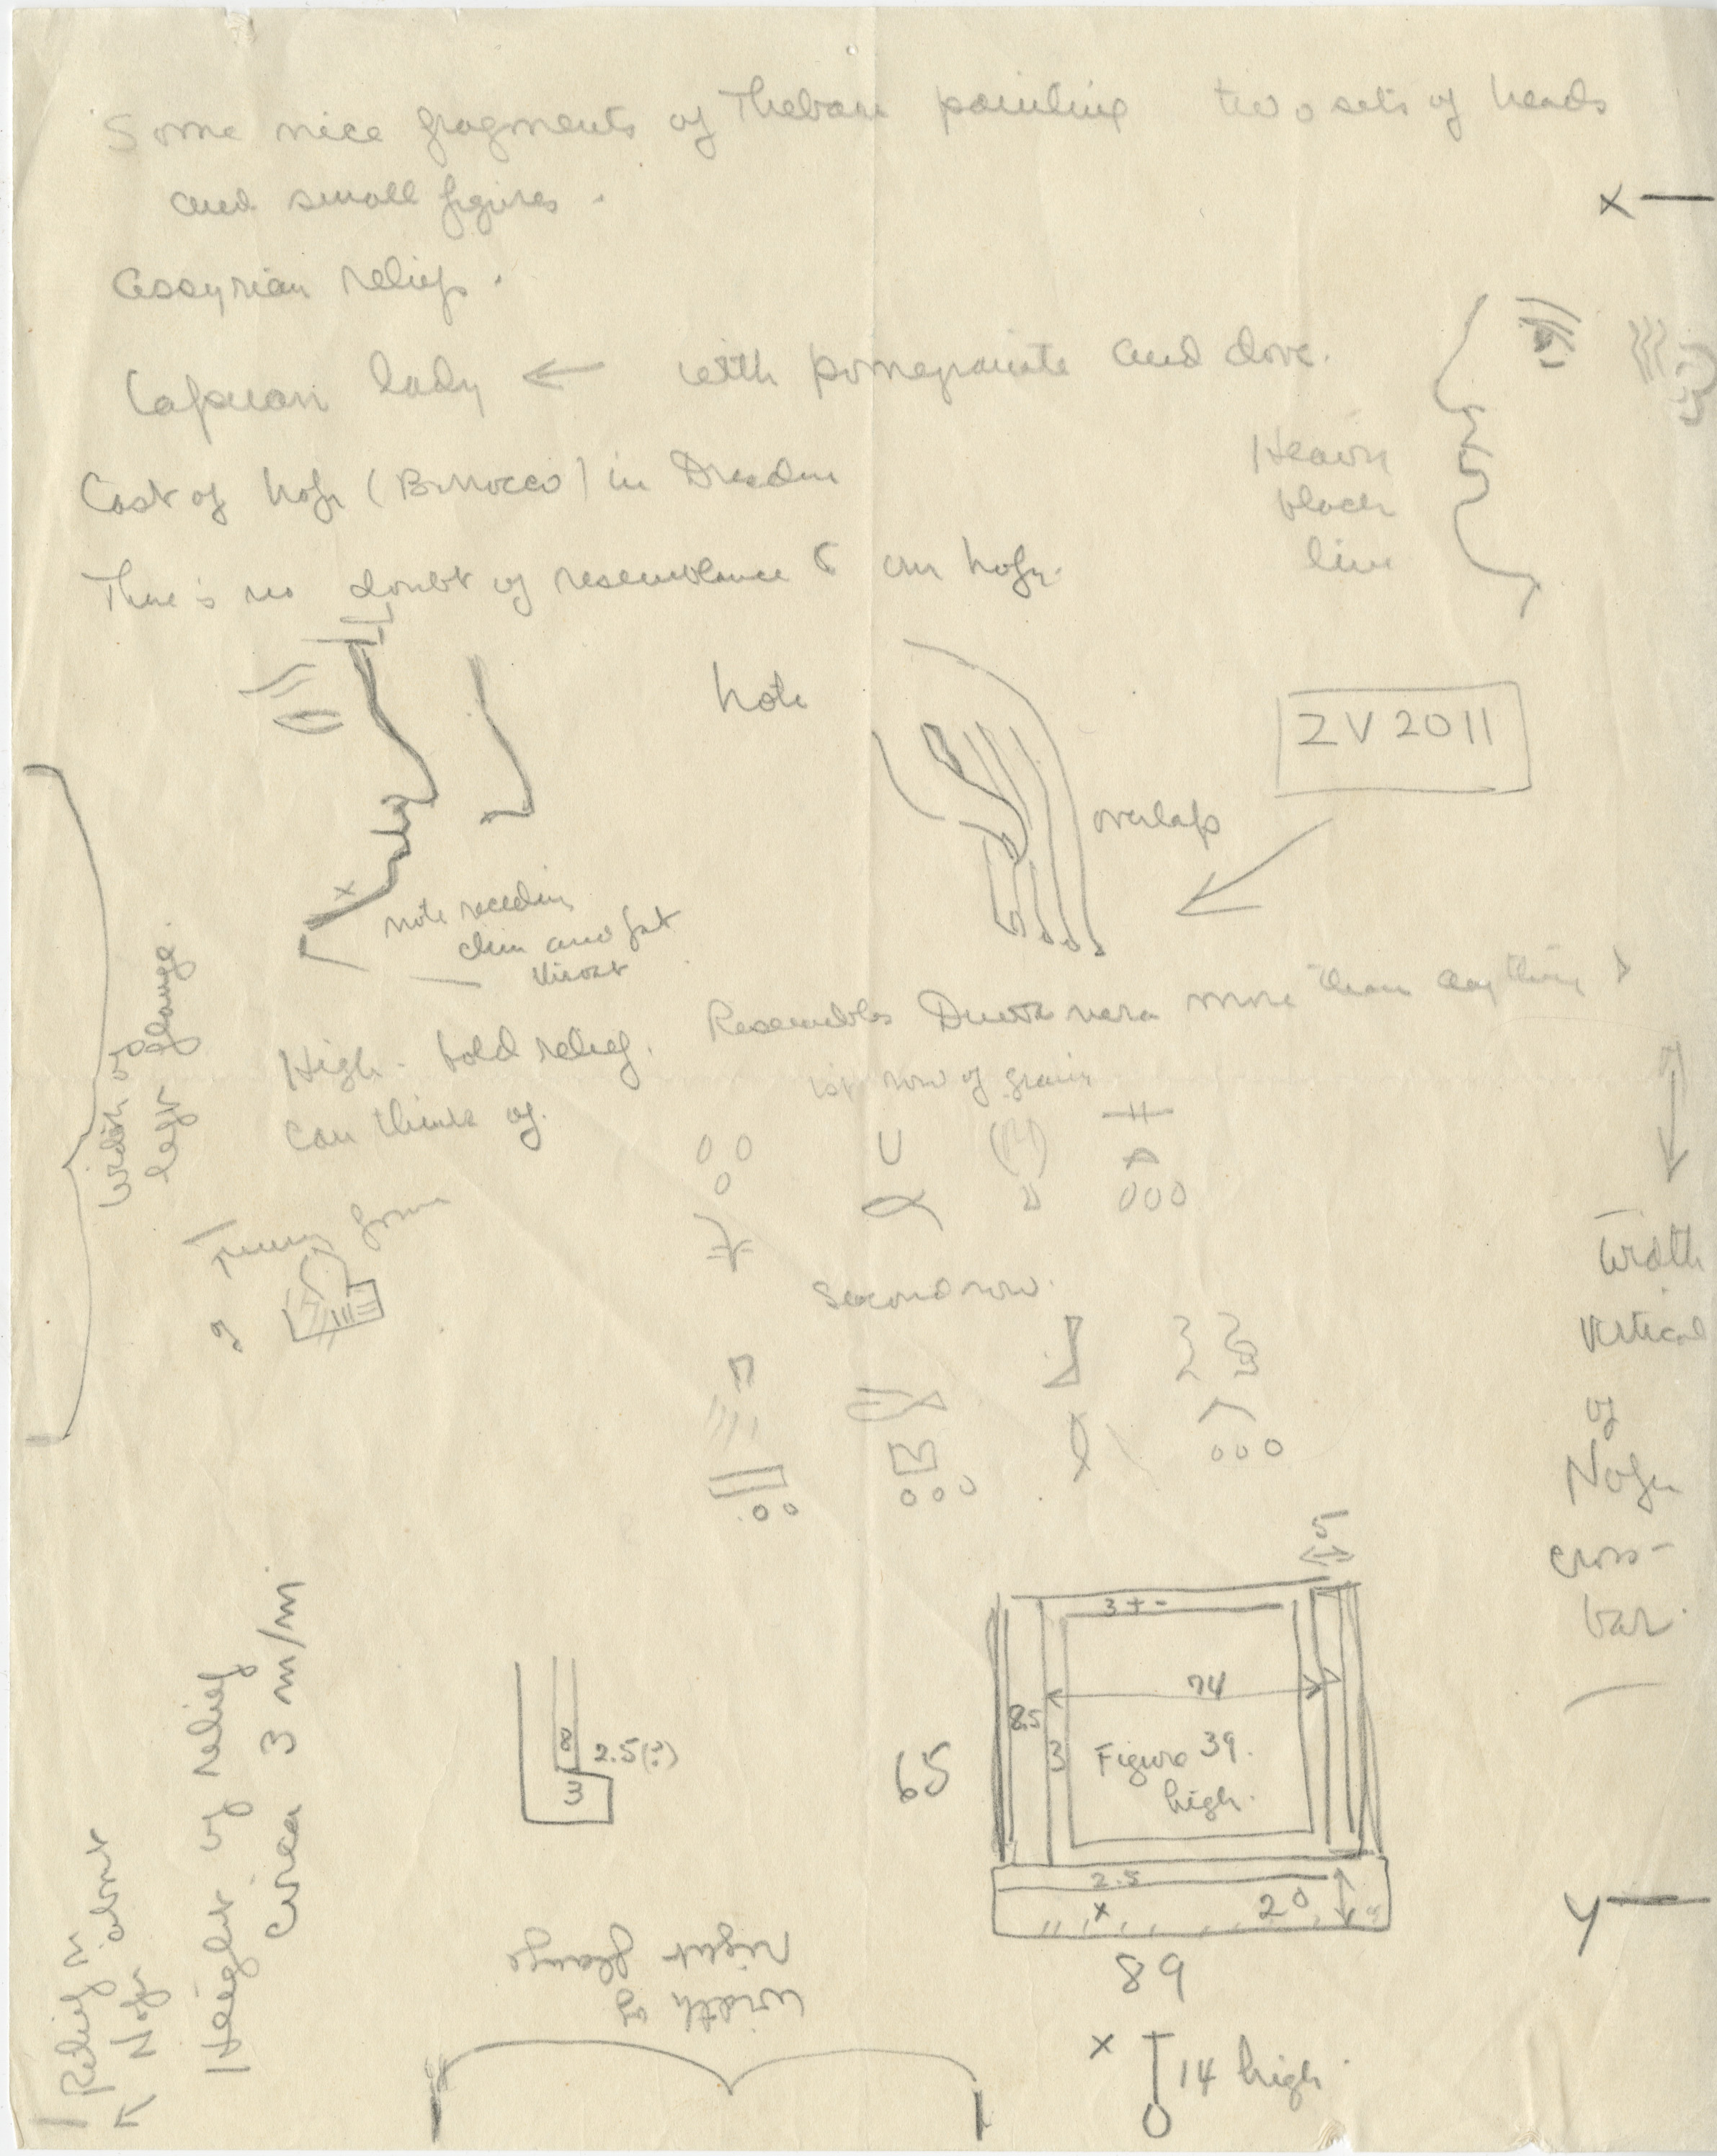 Notes: G 2110: false door tablet, W wall, notes and sketches